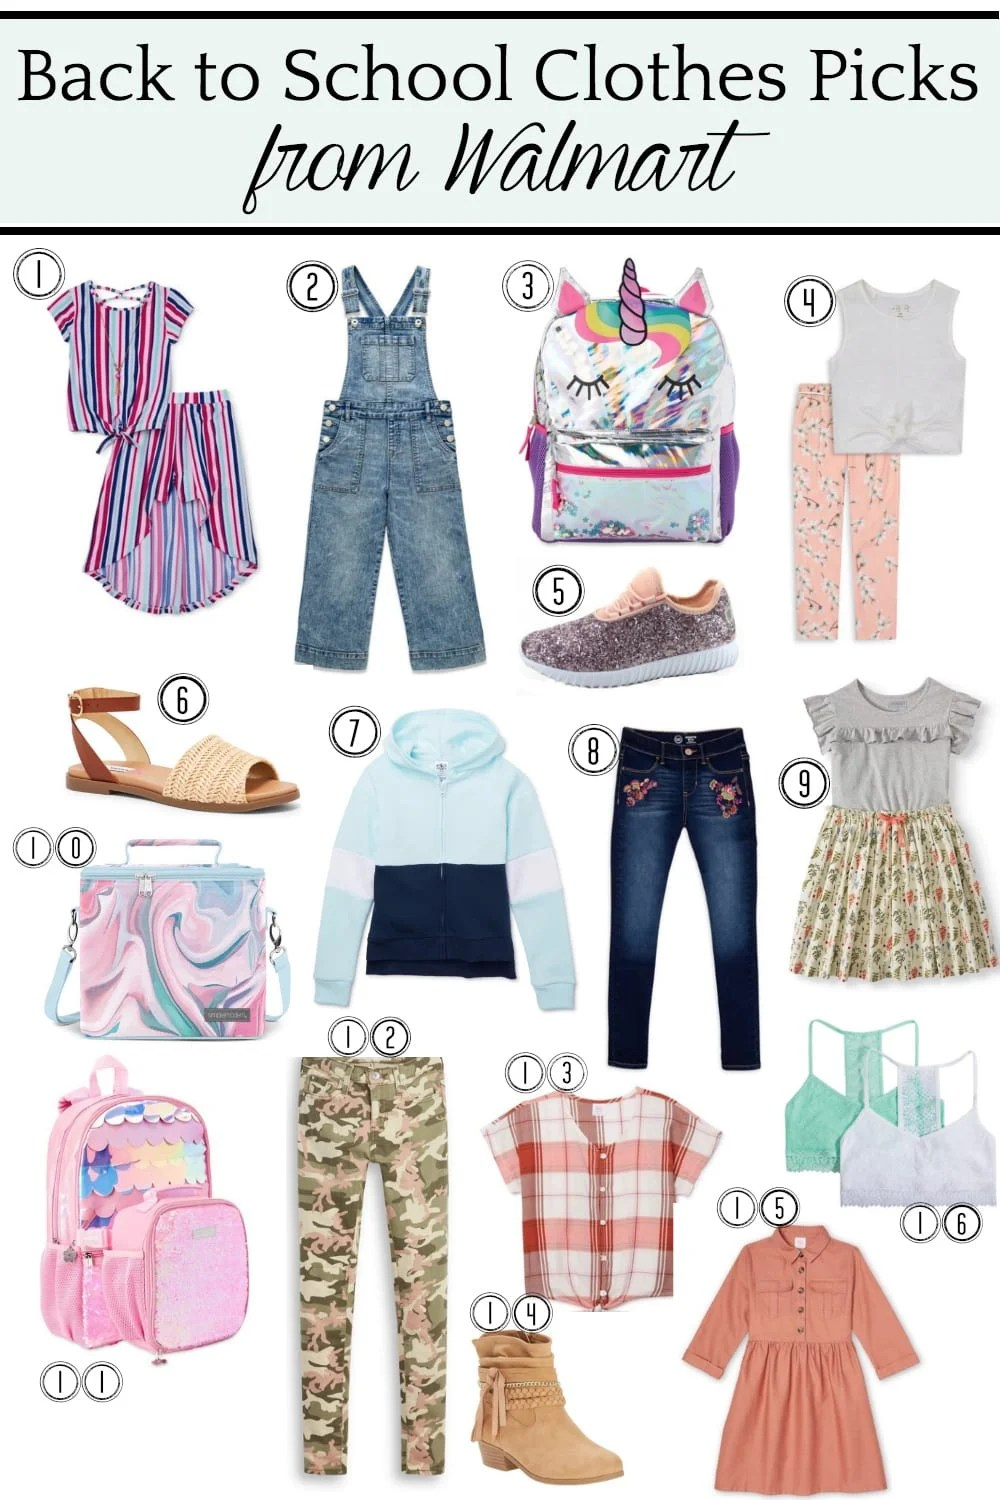 Back to School Clothes Picks from @walmart for Girls #ad #backtoschool